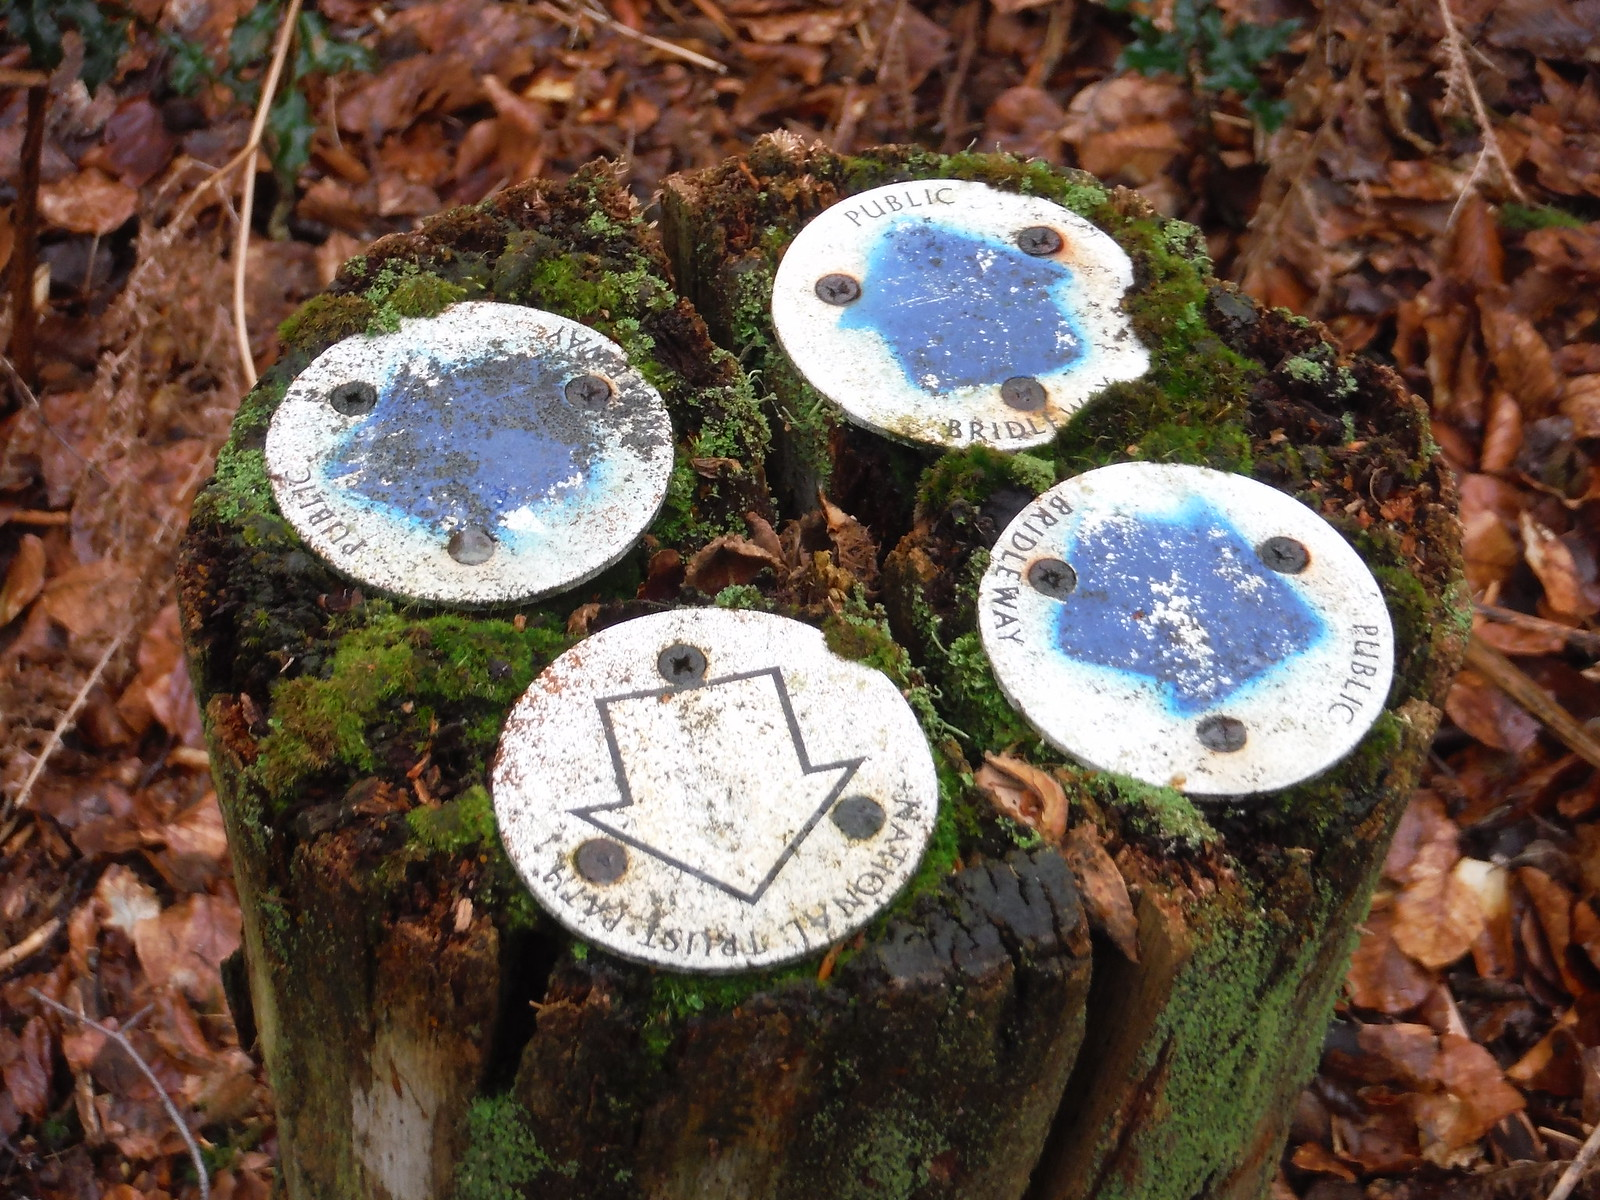 Markers on Tree Stump, Coombe Head SWC Walk 144 Haslemere to Farnham